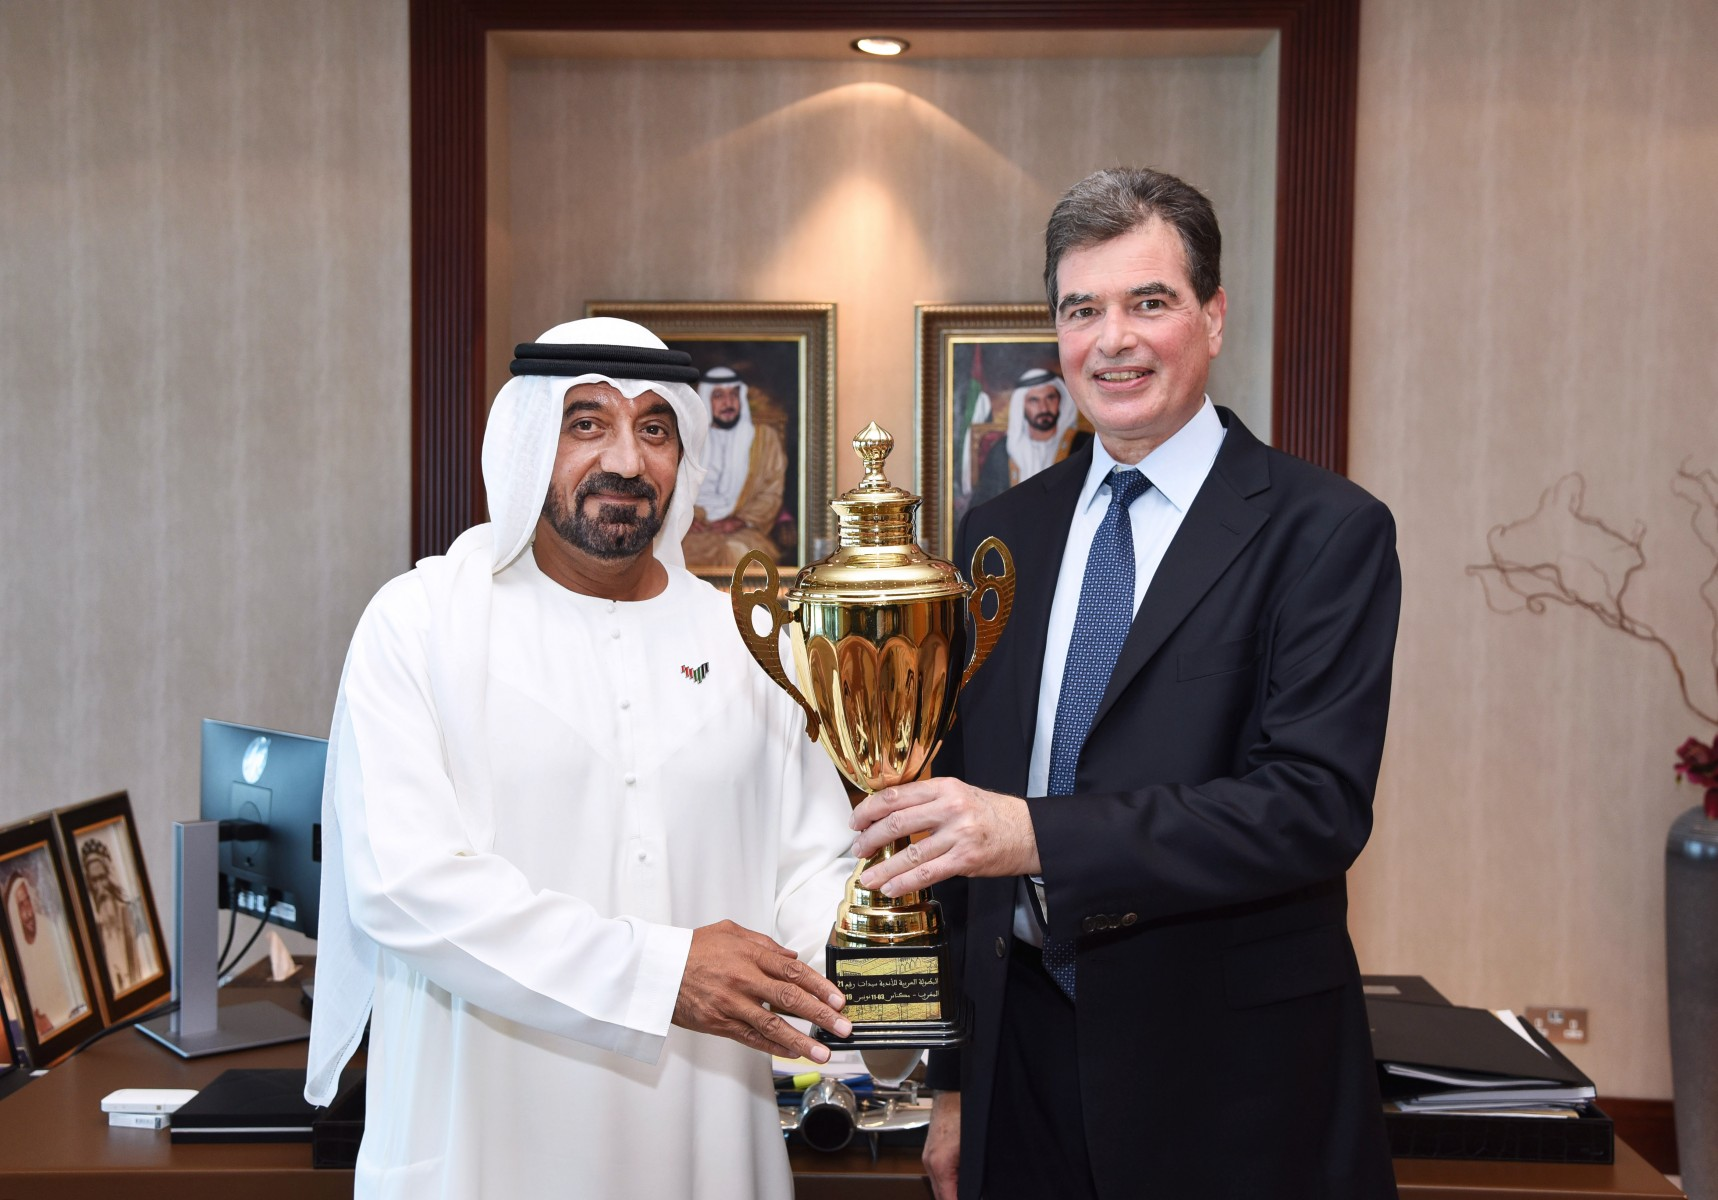 The Emirates Group Chairman & Chief Executive, His Highness Sheikh Ahmed bin Saeed Al Maktoum today received Nadim Hakim, Beirut Basketball Club President at the Group's headquarters.  During the visit, Hakim presented the Arab Women's Club Championship Trophy to His Highness Sheikh Ahmed.